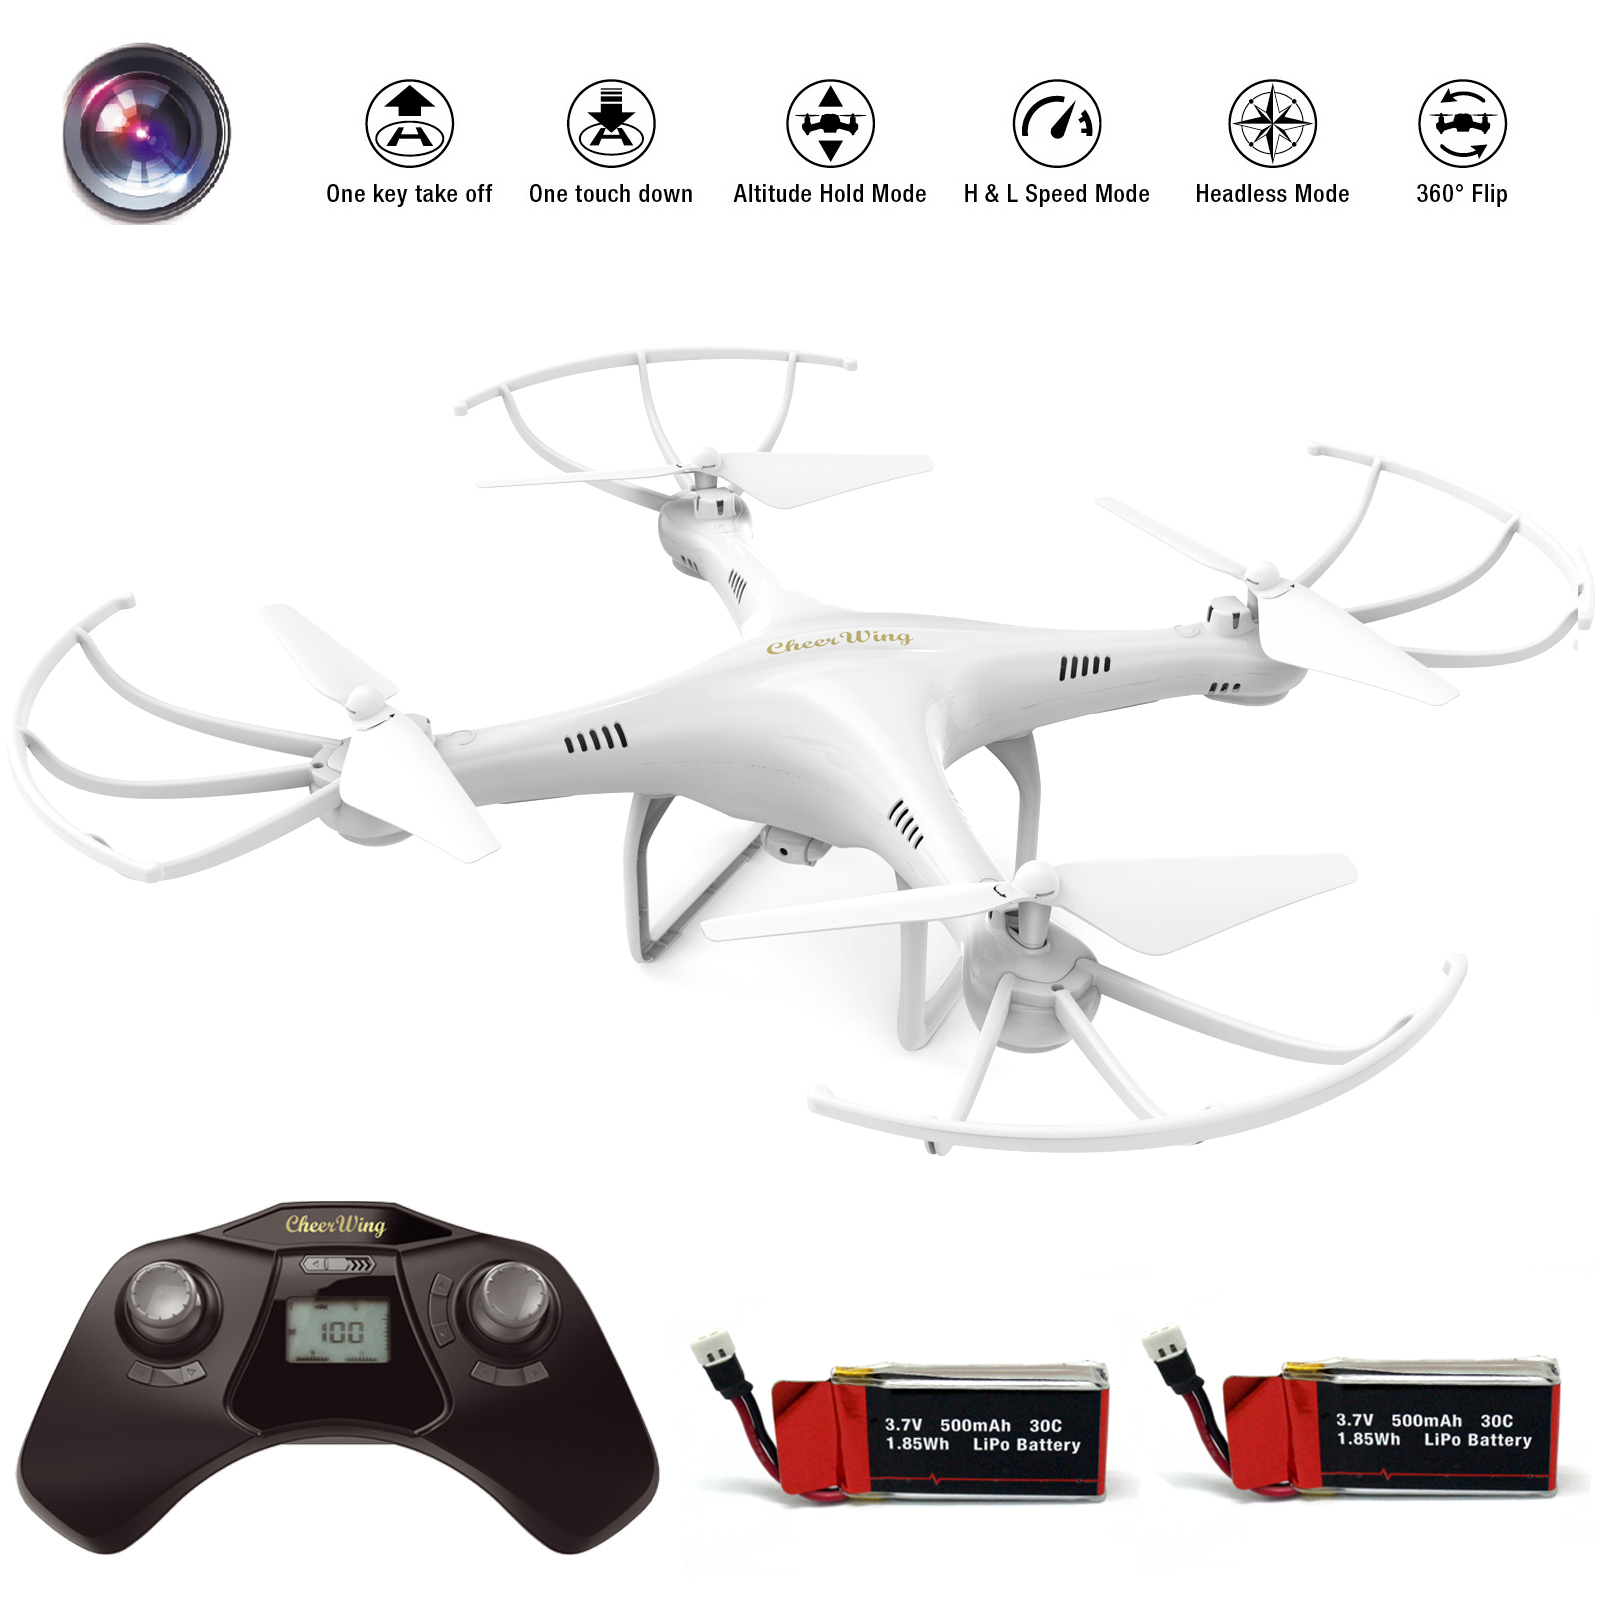 Cheerwing CW4 2.4Ghz 4CH RC Quadcopter Drone with 720P HD Camera, Headless and Altitude... by Cheerwing